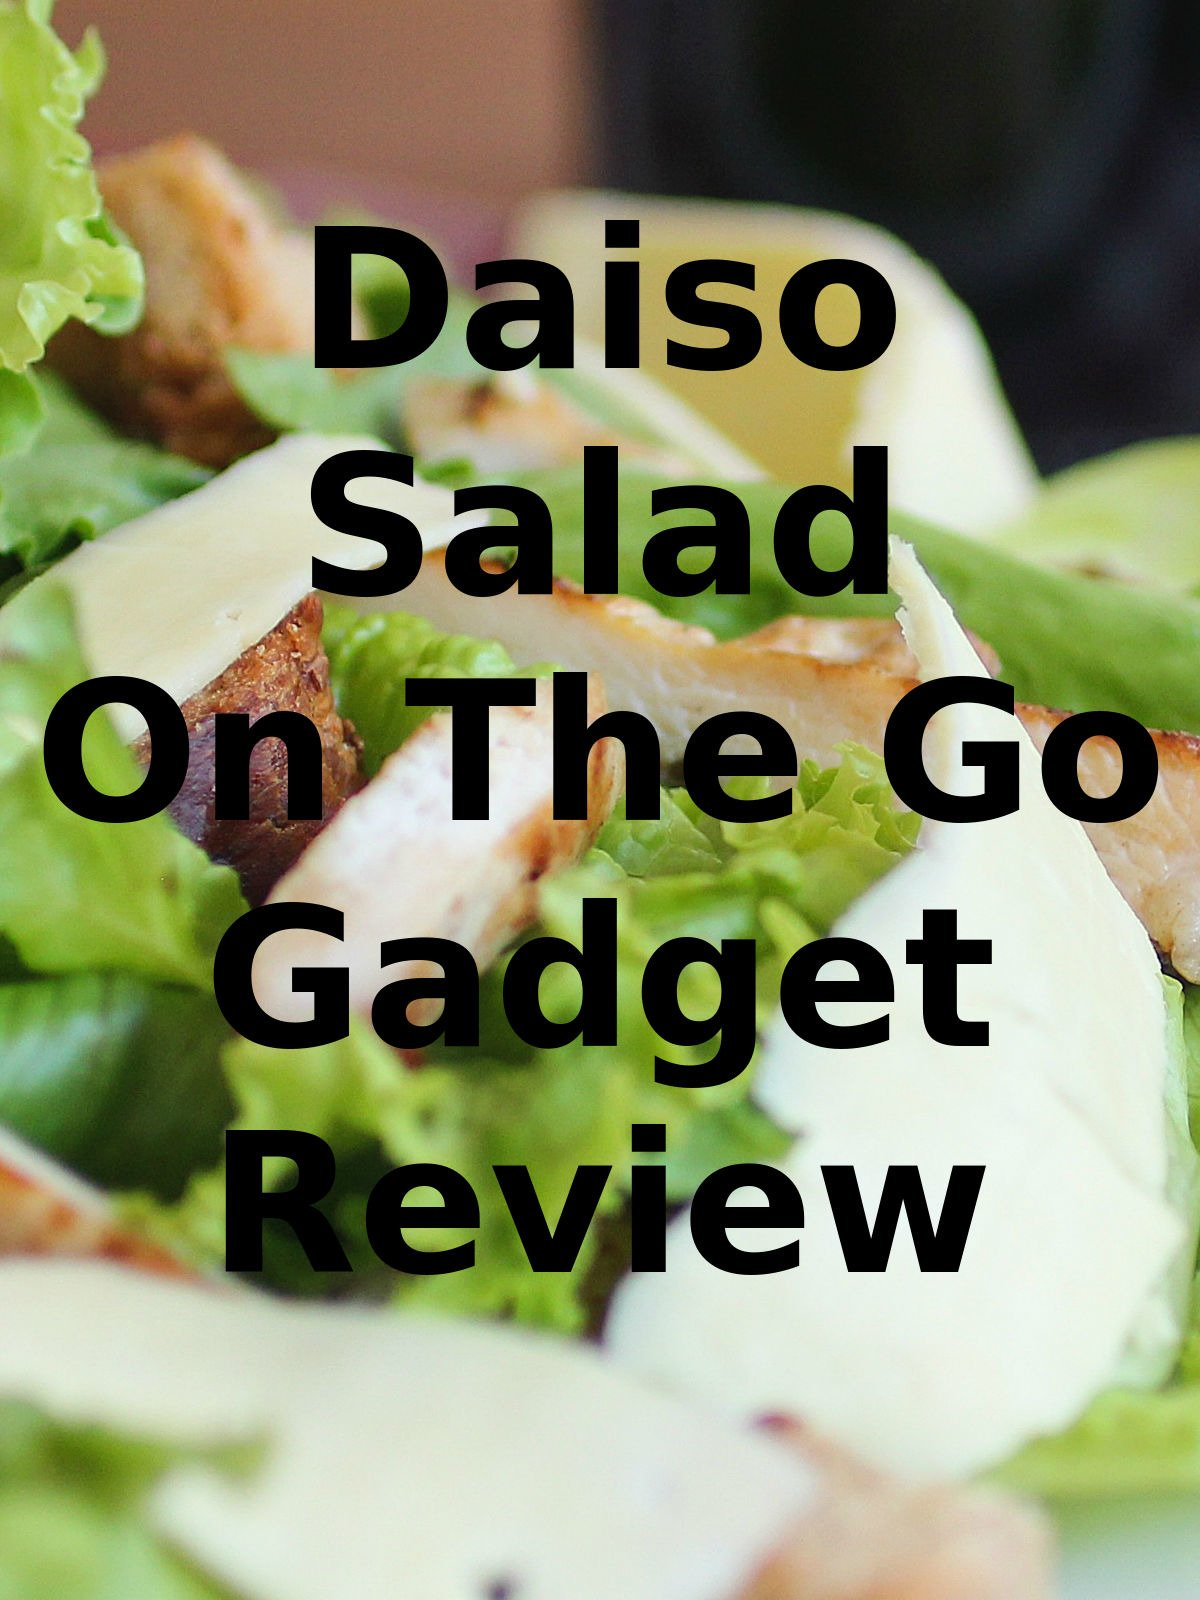 Review: Daiso Salad On The Go Gadget Review